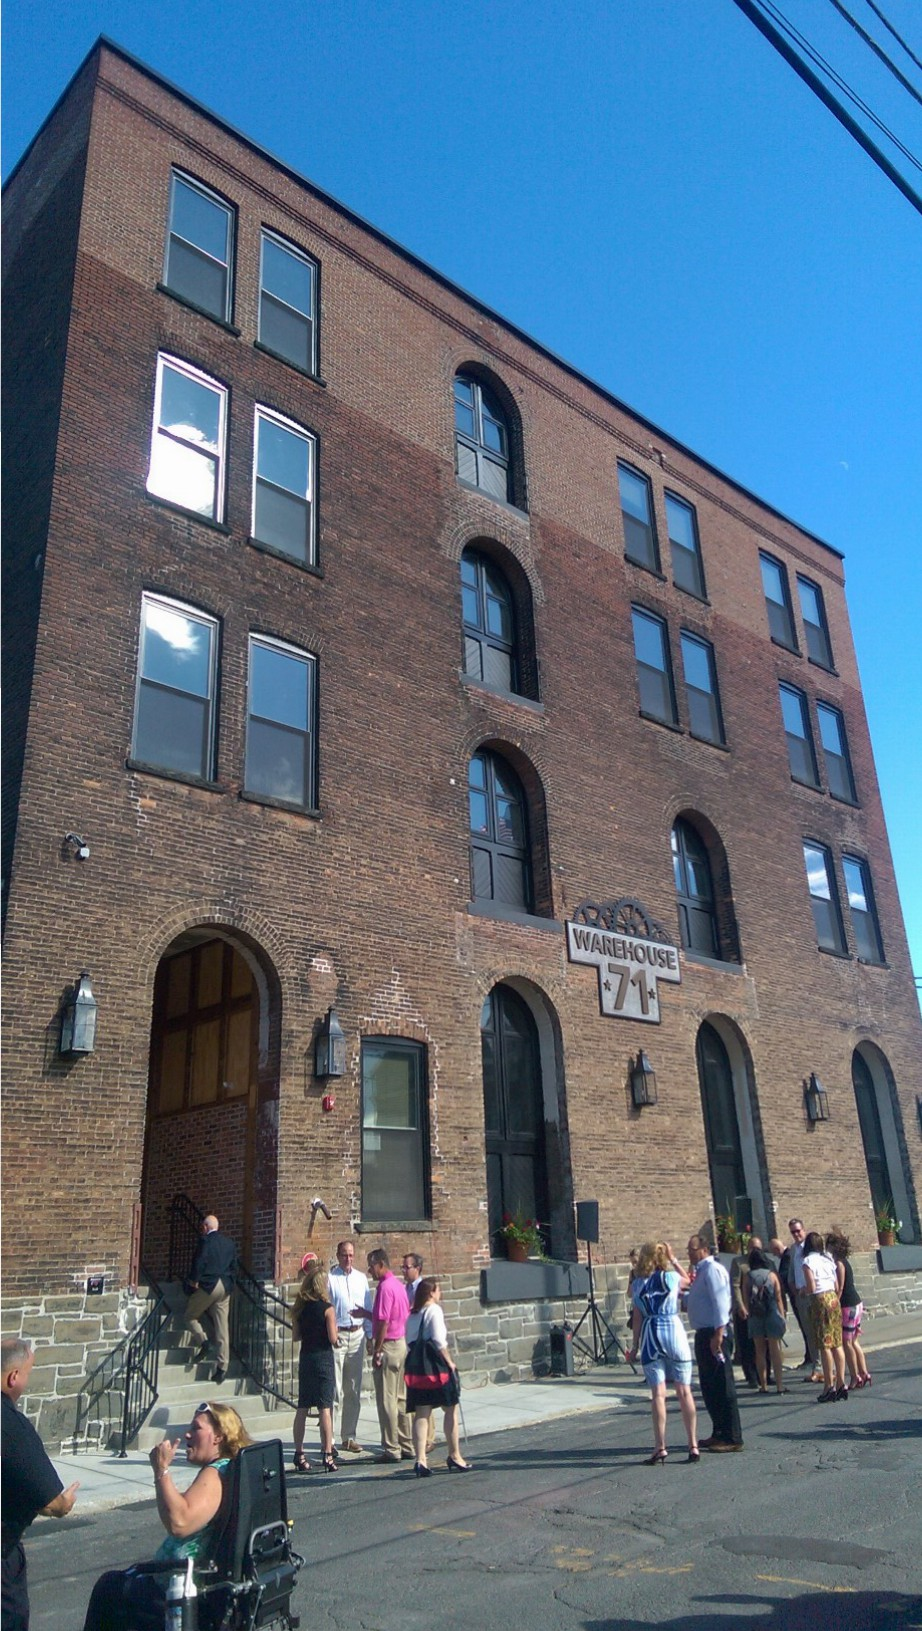 Warehouse-71-Lofts-Architects-Cohoes-NY-Historic-Restoration